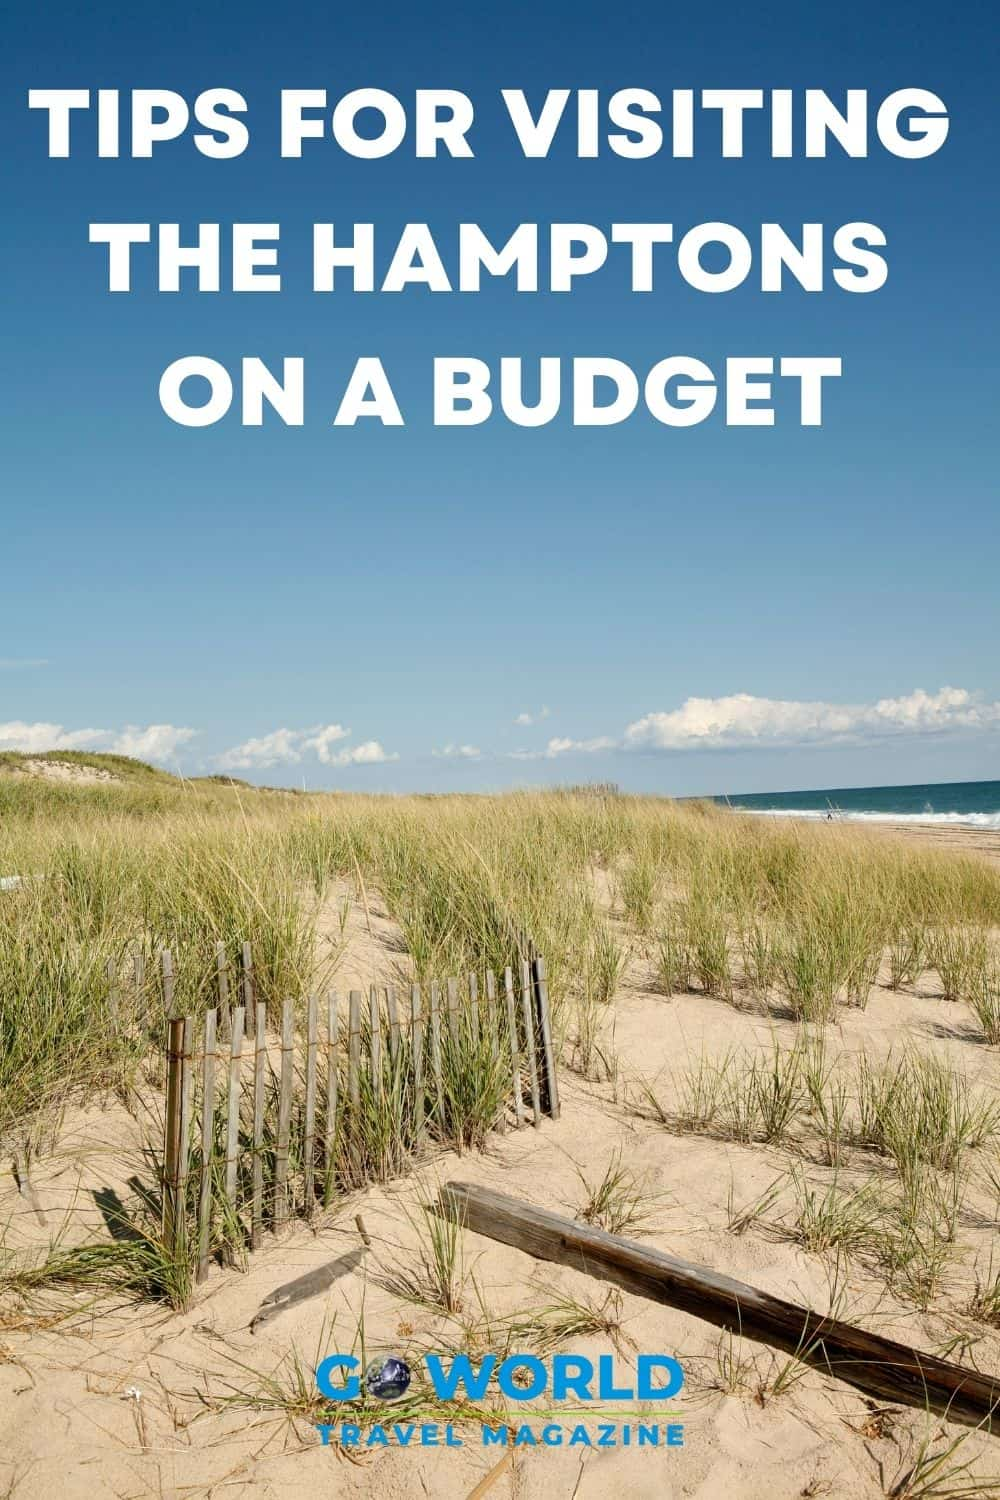 Planning on visiting the Hamptons but don't have a fortune to spend? These tried and true tips will help you visit the Hamptons on a budget. #thehamptons #montauk